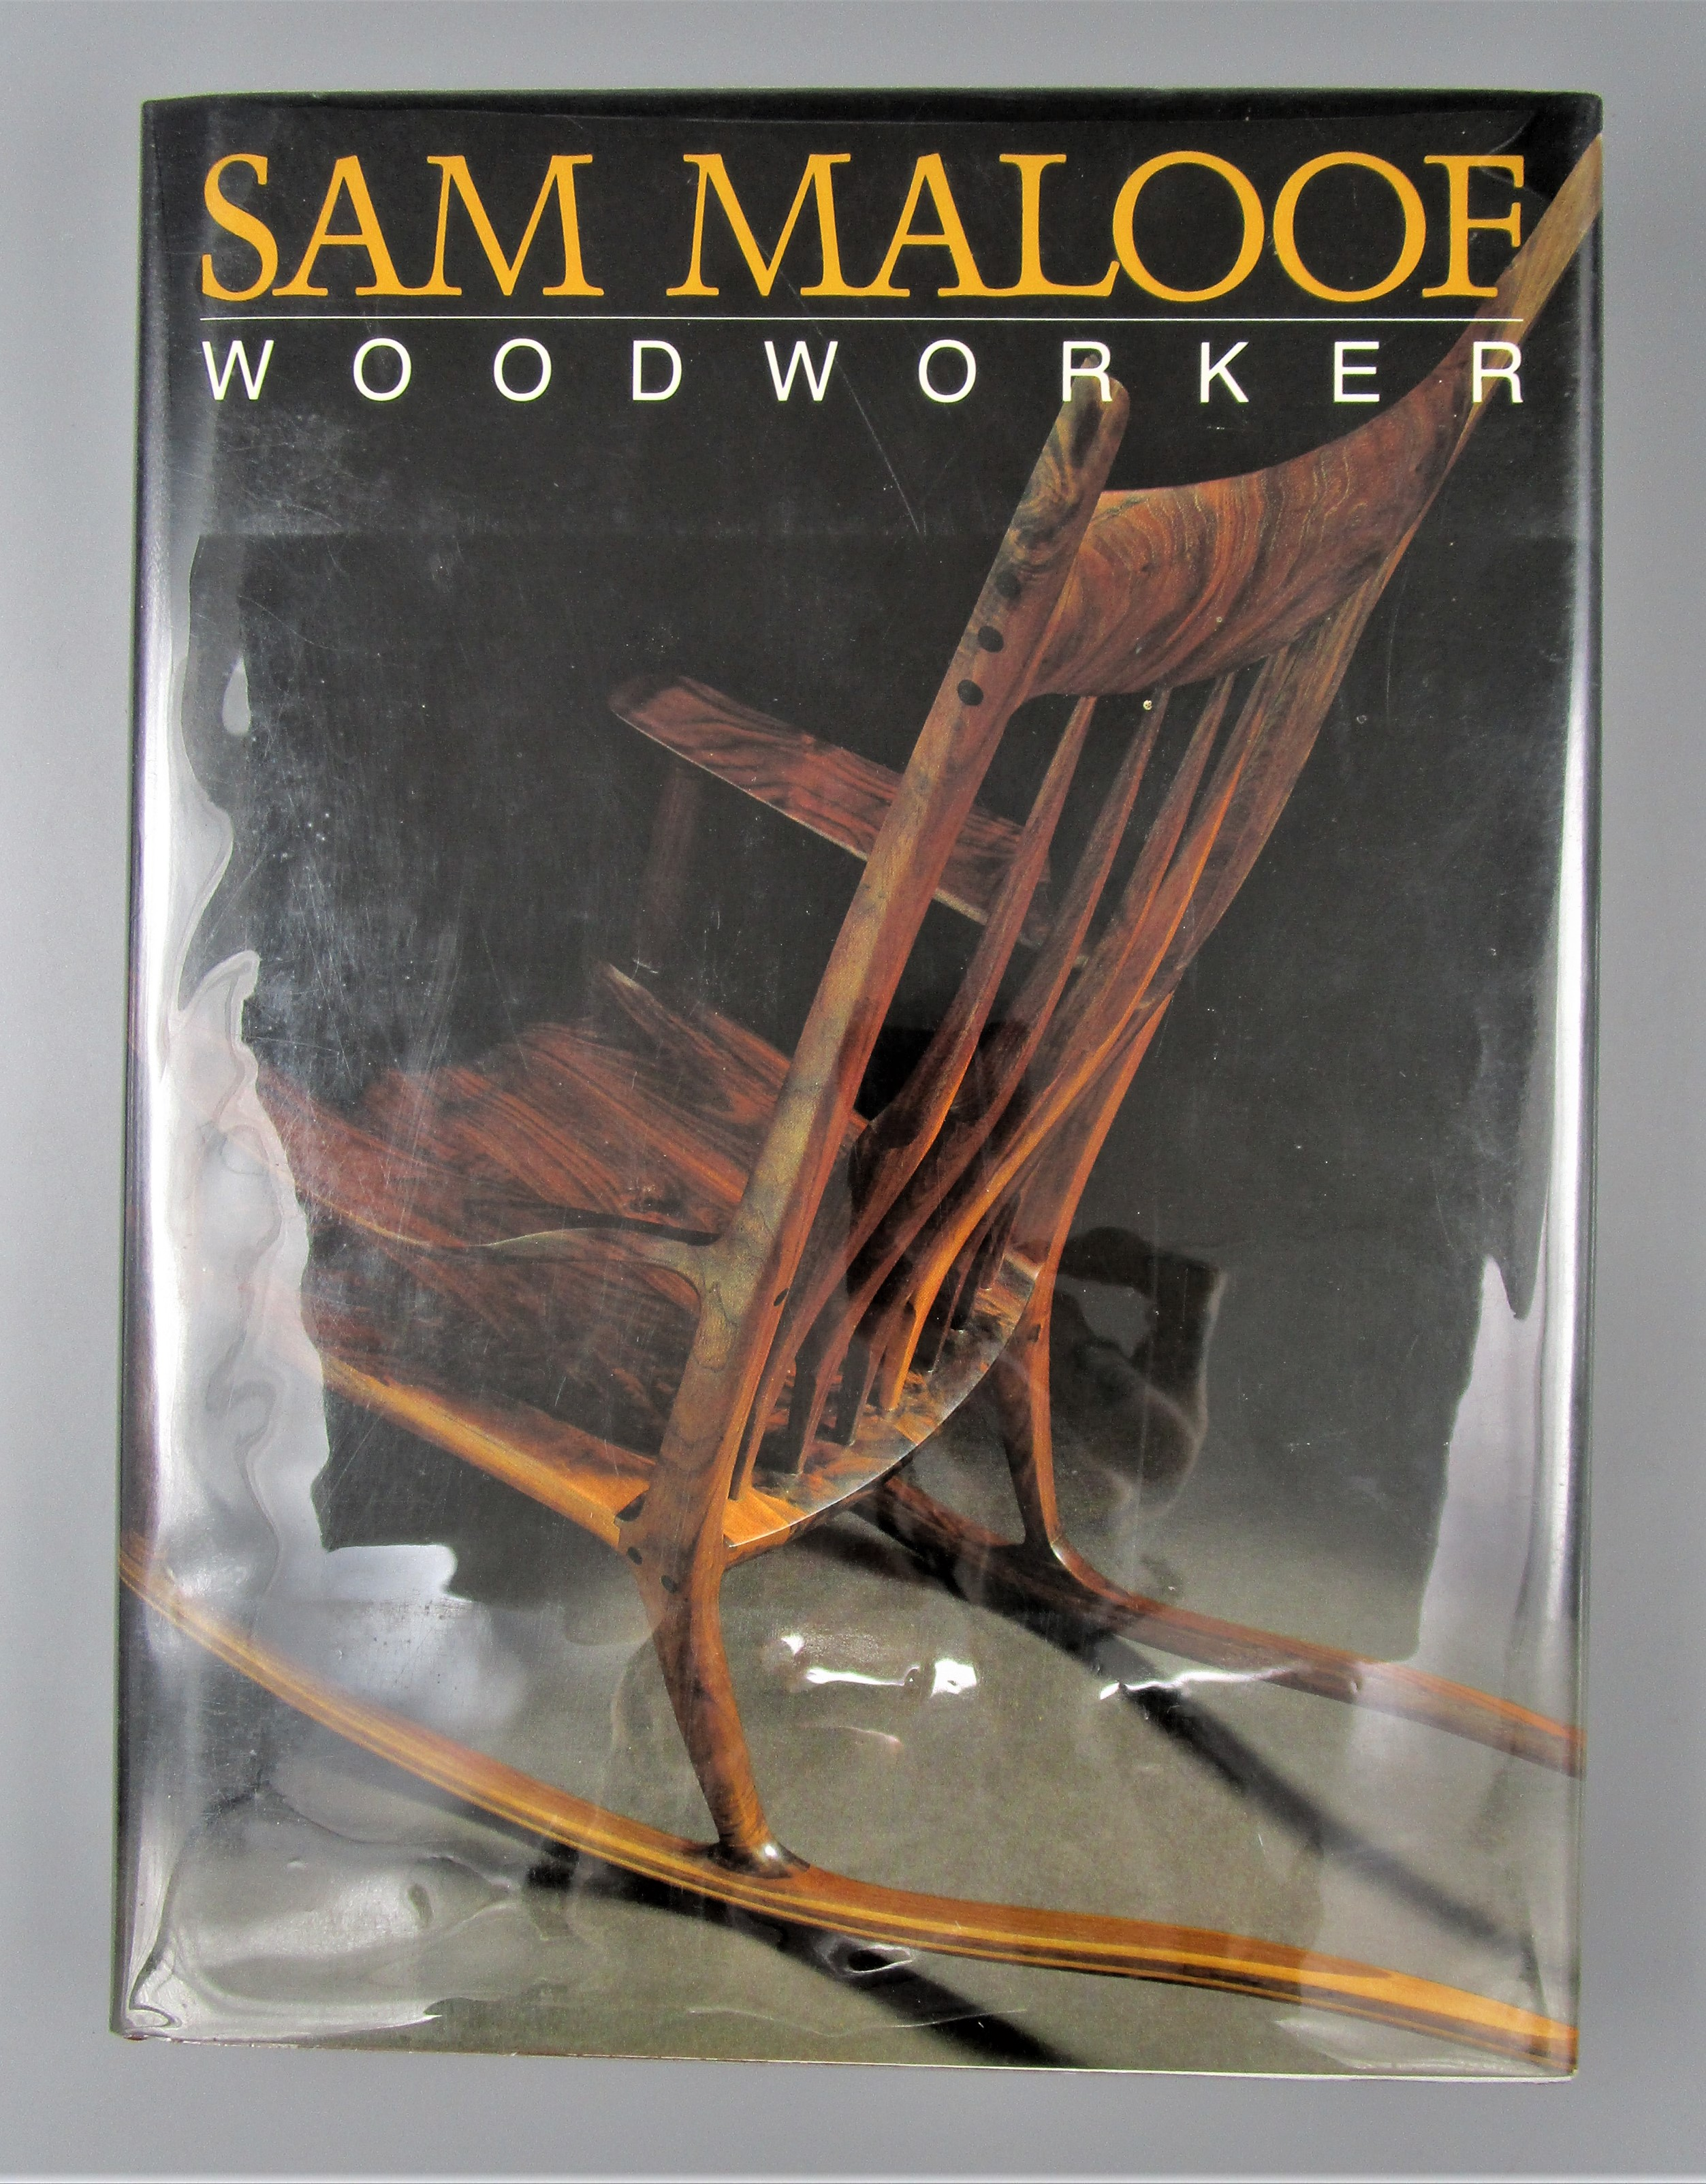 SAM MALOOF: WOODWORKER, by Sam Maloof - 1983 [1st Ed/Signed]